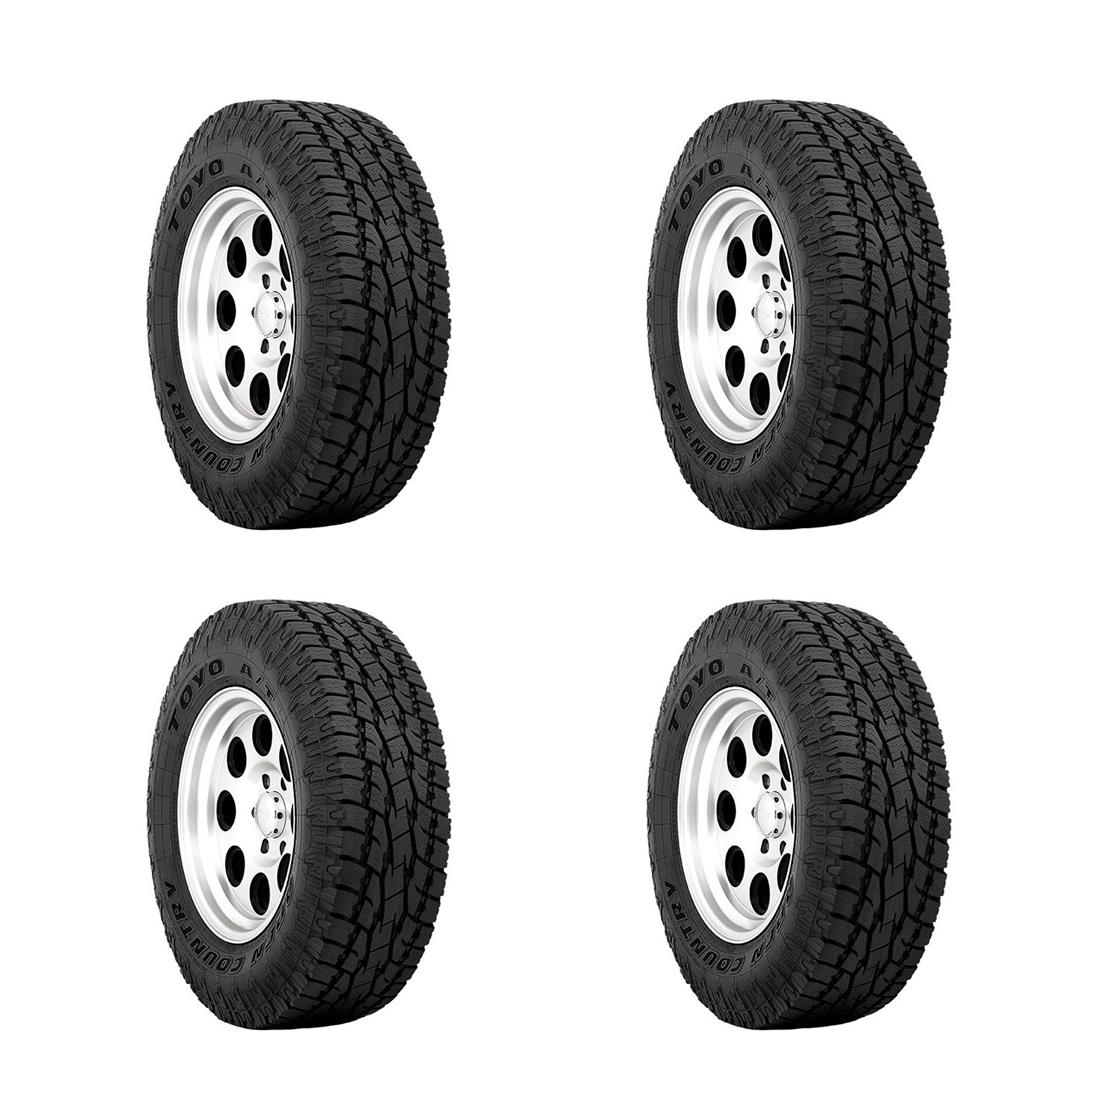 TOYO All Terrain Tires P265/65R17 110T Open Country (R) A/T II (Set of 4)